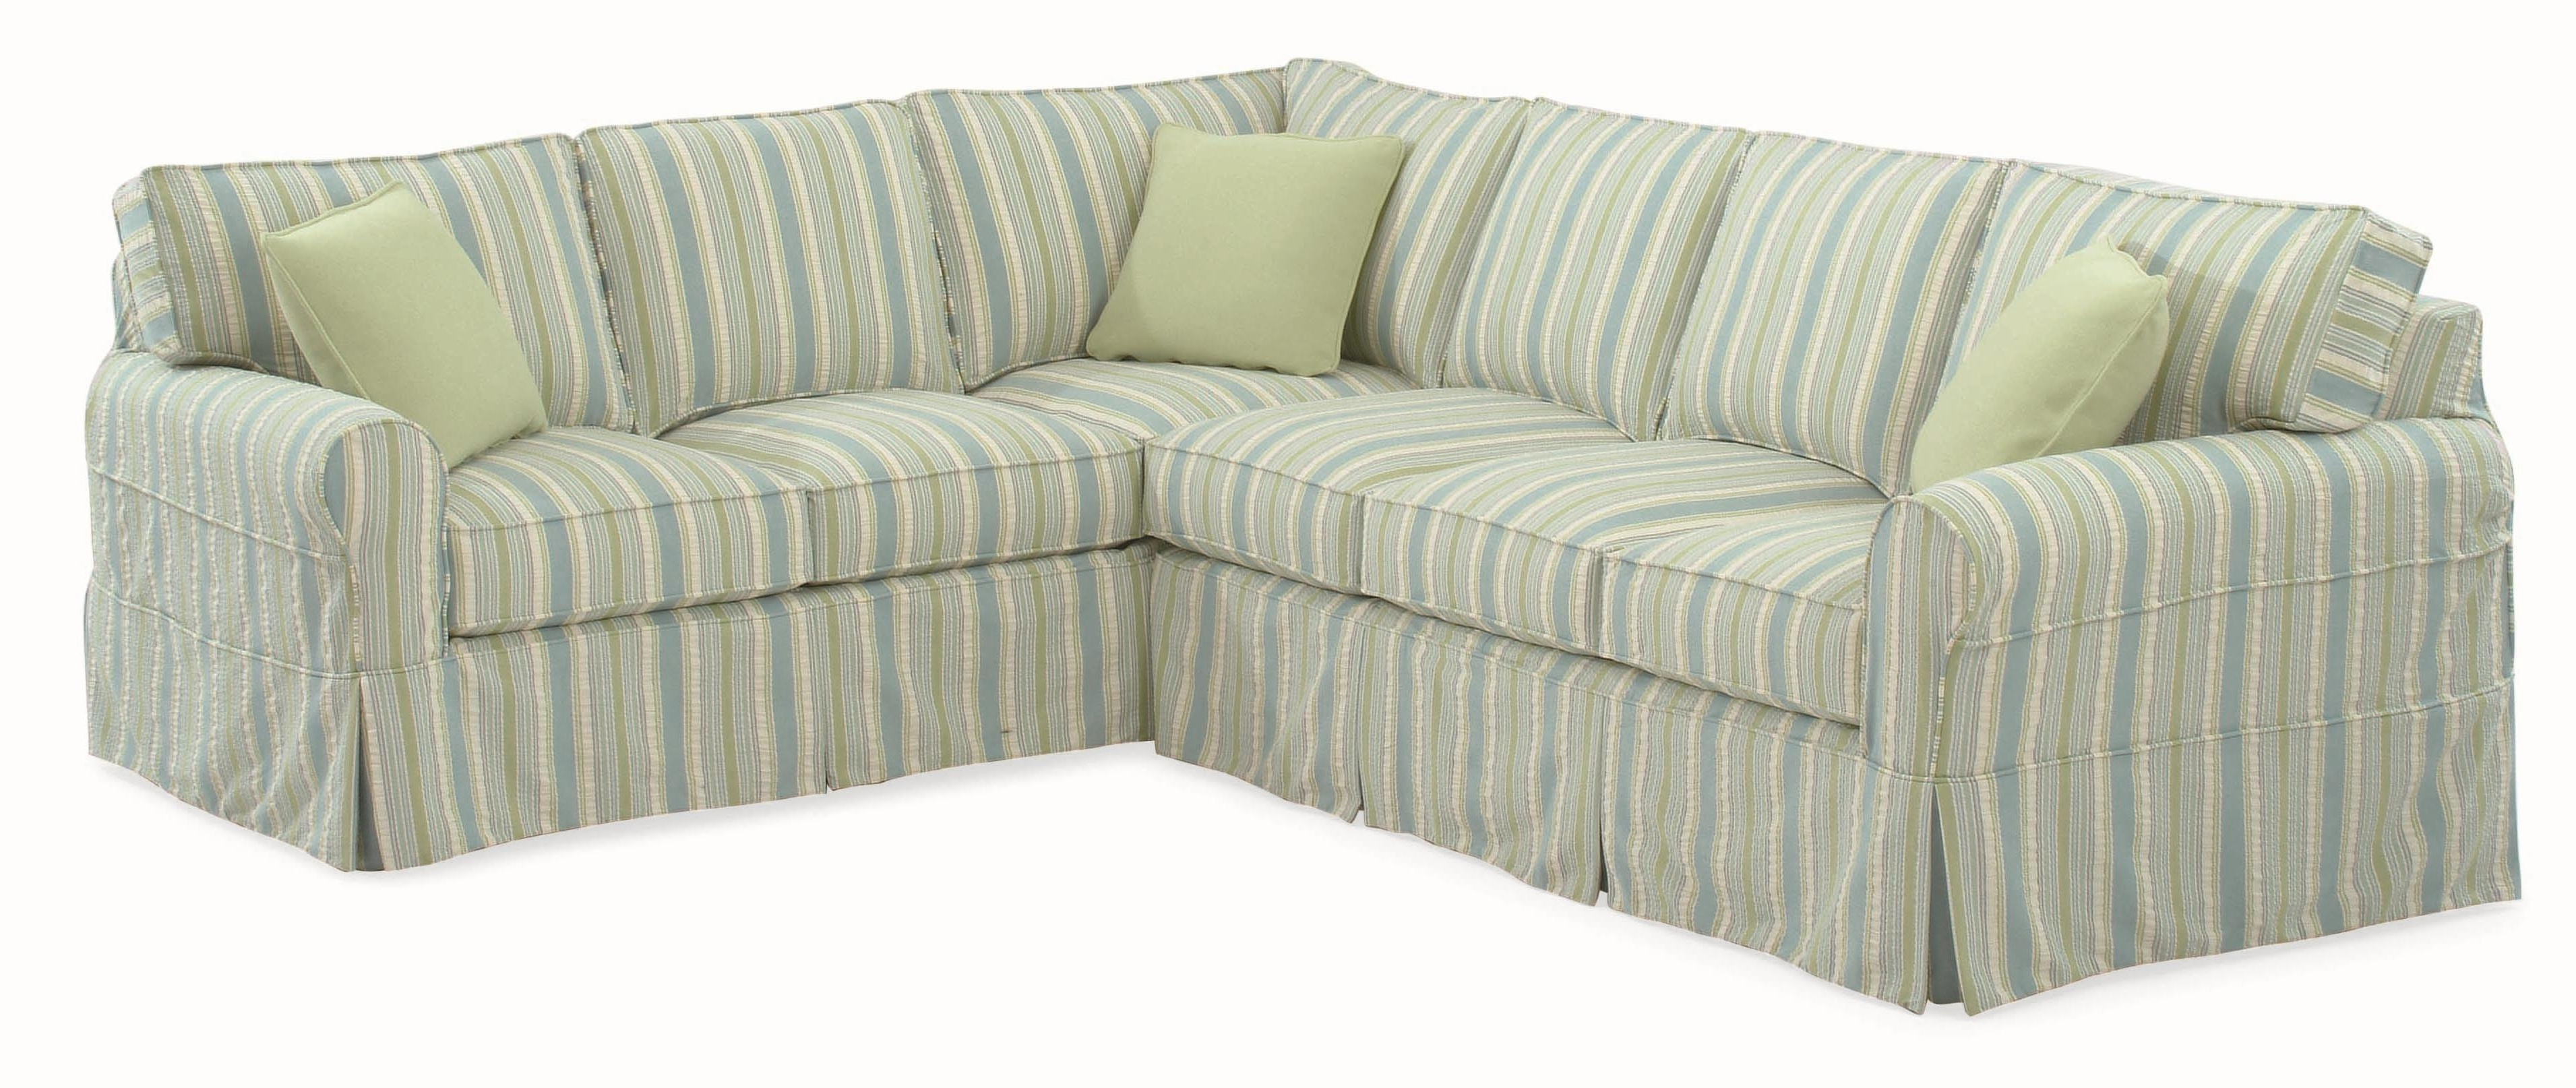 Famous Havertys Sectional Sofas Intended For Braxton Culler 728 Casual Sectional Sofa With Rolled Arms And (View 10 of 15)